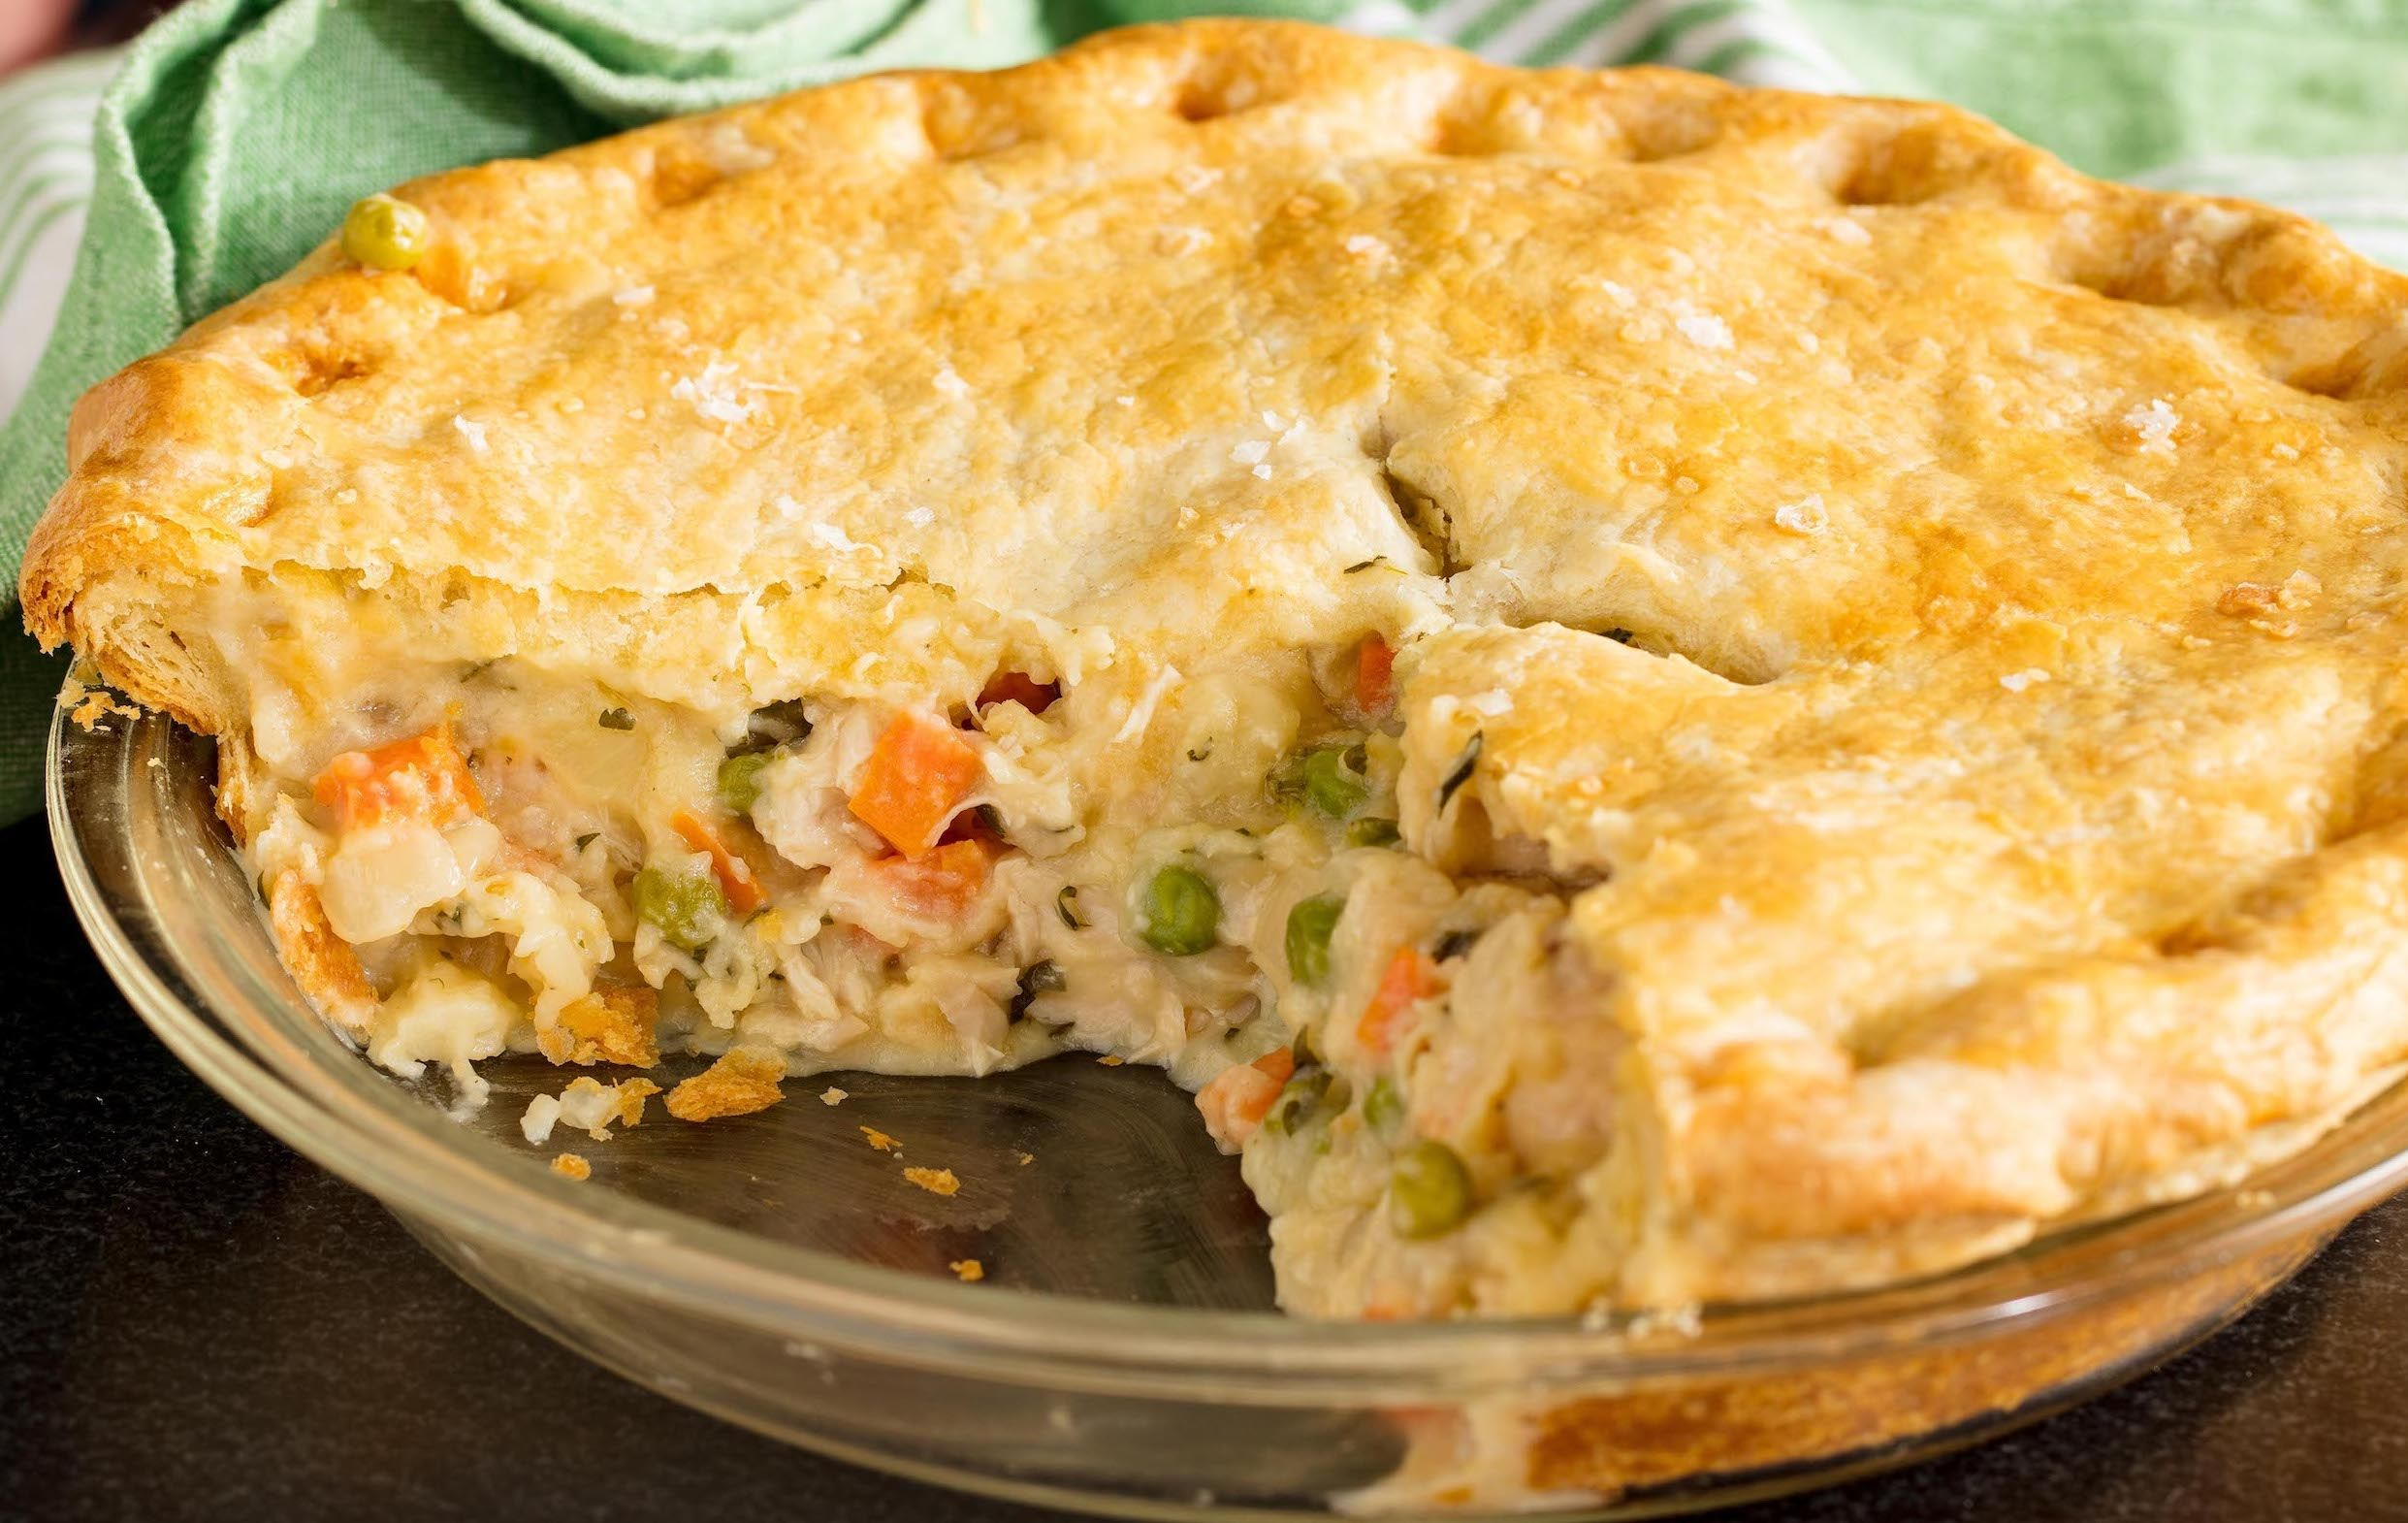 Easy Homemade Chicken Pot Pie Recipe How To Best Make Chicken Pot Pie